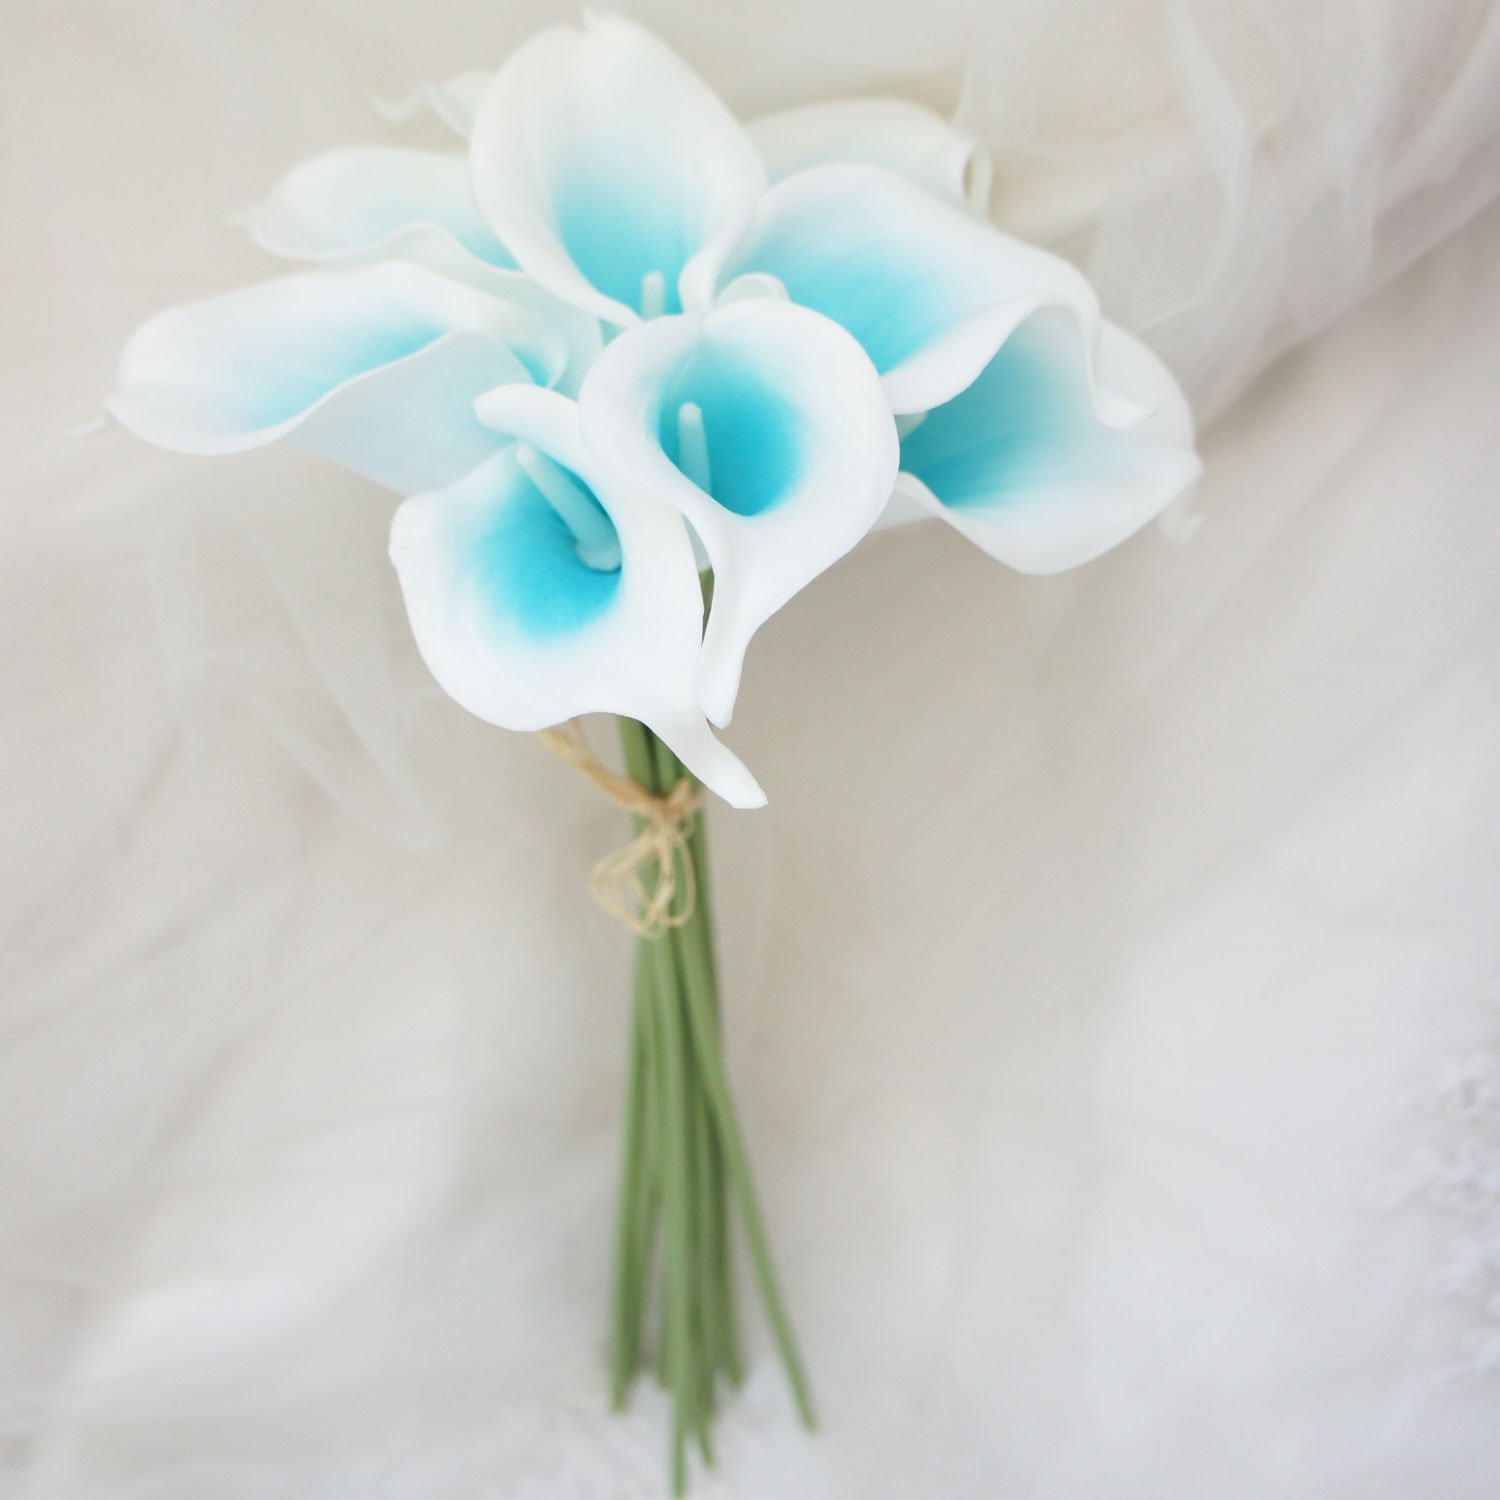 Amazon lily garden artificial picasso calla lily flower amazon lily garden artificial picasso calla lily flower bouquets turquoise and white home kitchen dhlflorist Gallery